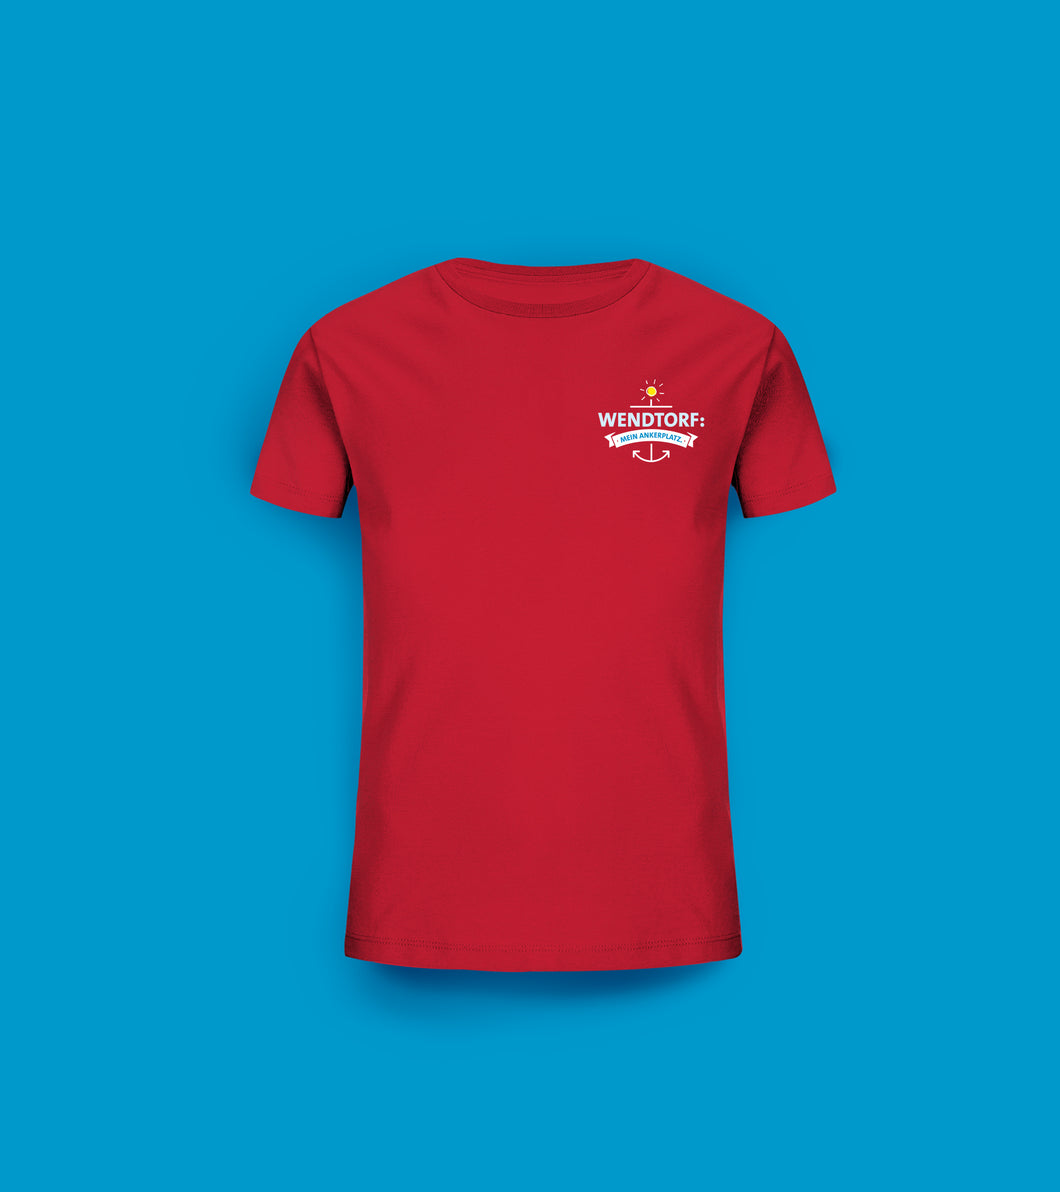 Kinder T-Shirt in Rot Wendtorf: Mein Ankerplatz.